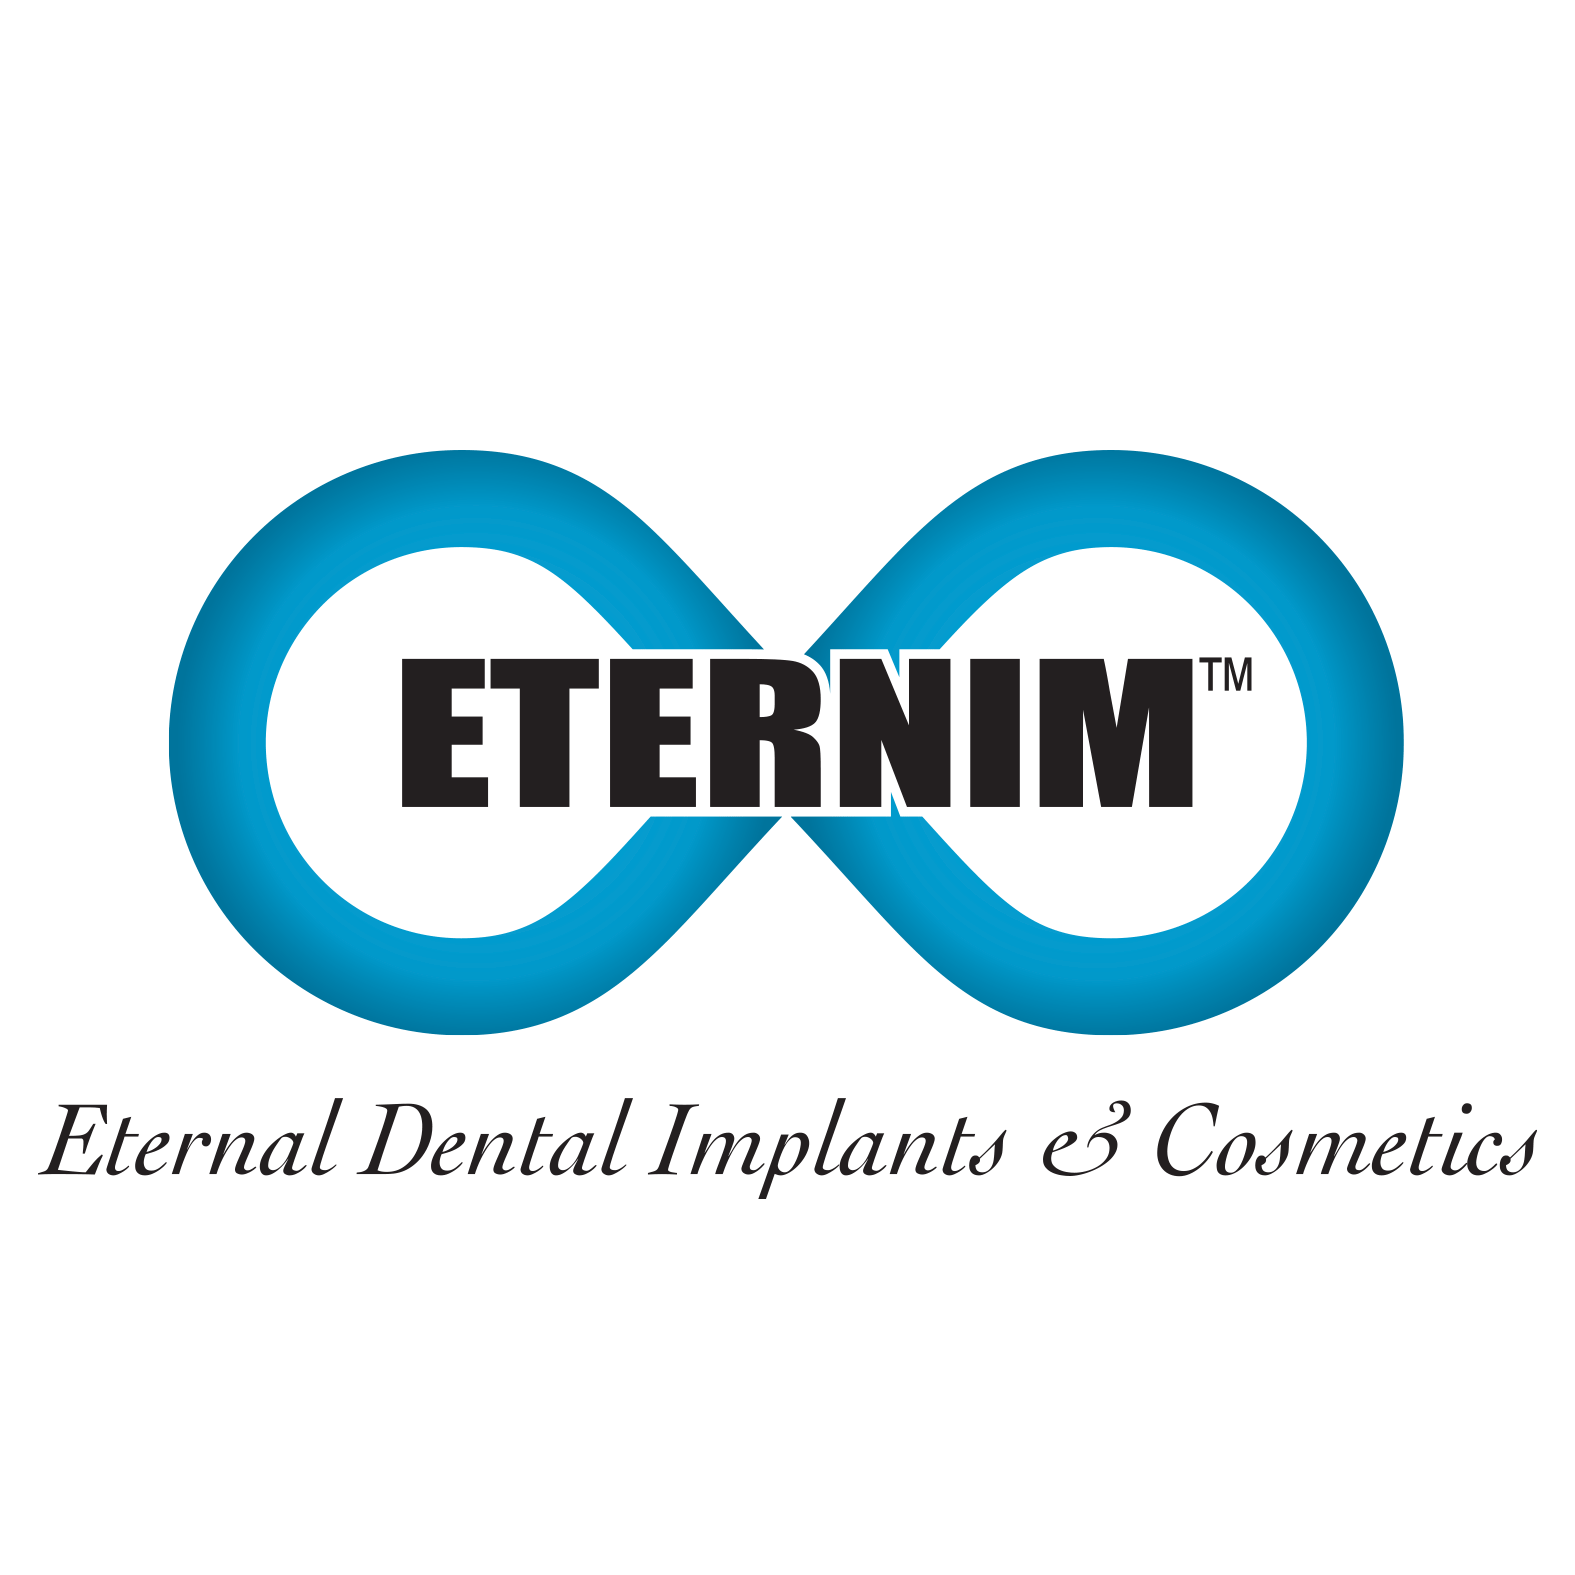 Eternim Dental Implants & Cosmetics - Dallas, TX 75219 - (214)521-5900 | ShowMeLocal.com